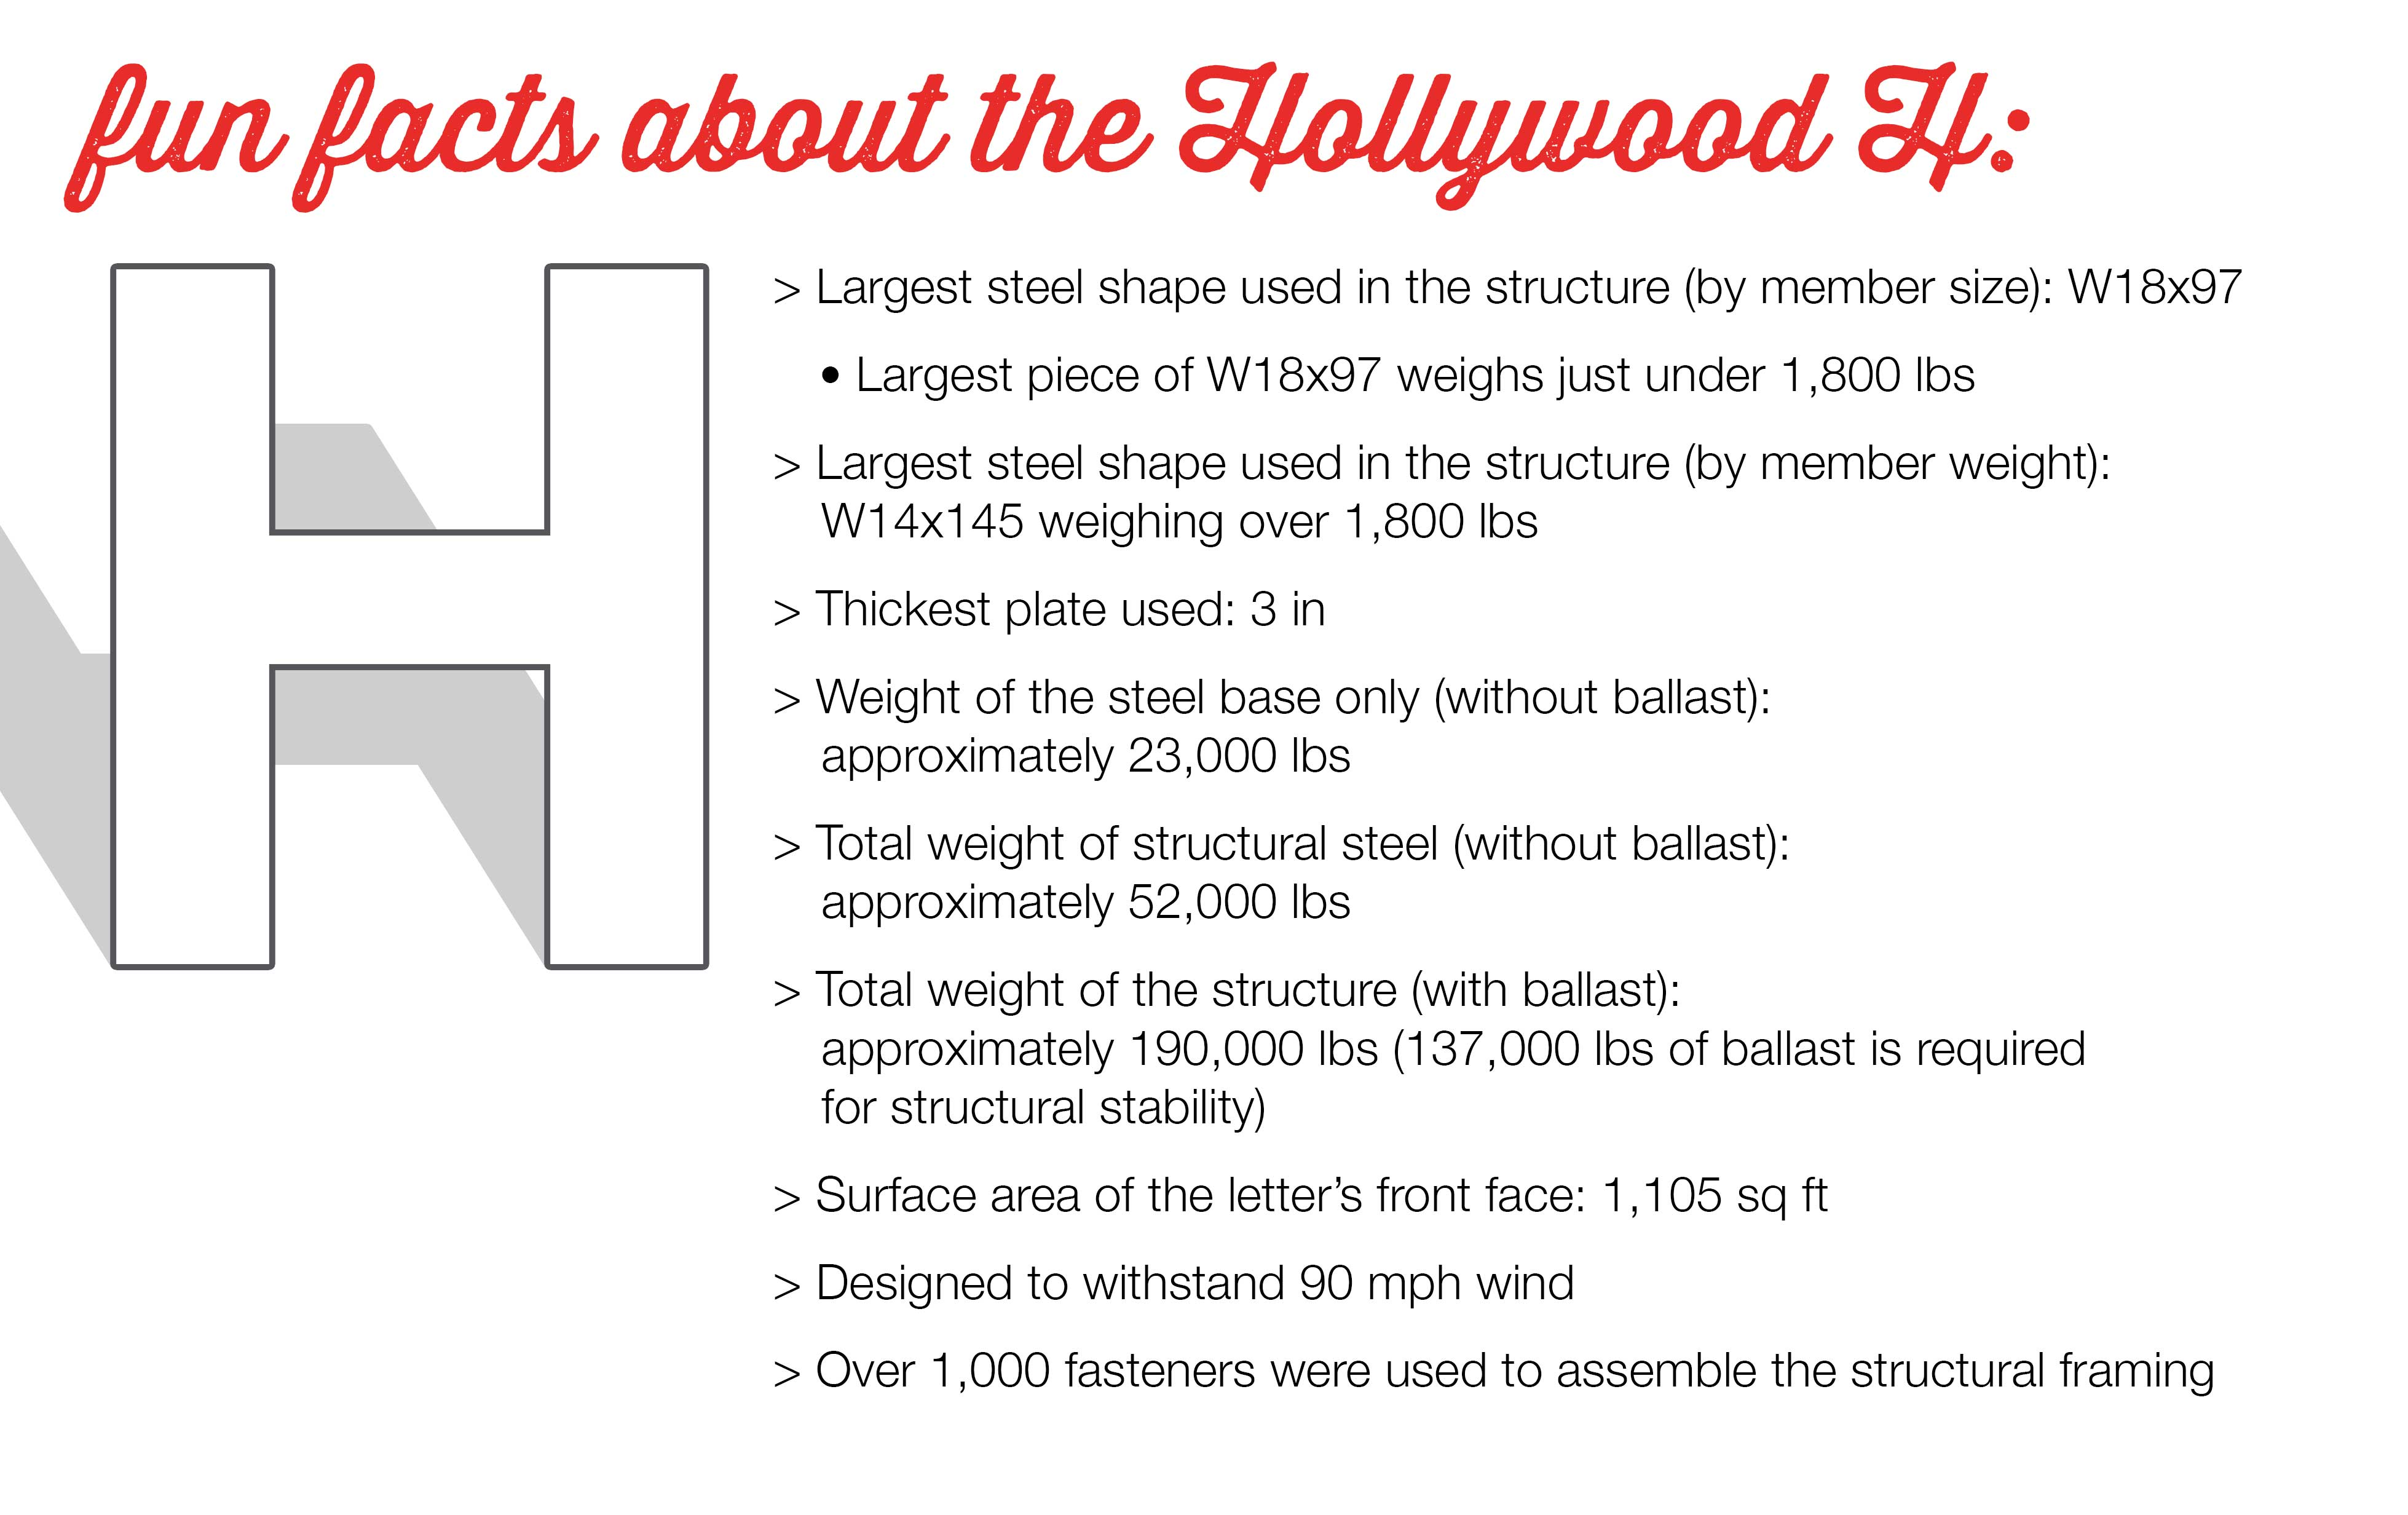 Fun facts about the Hollywood H